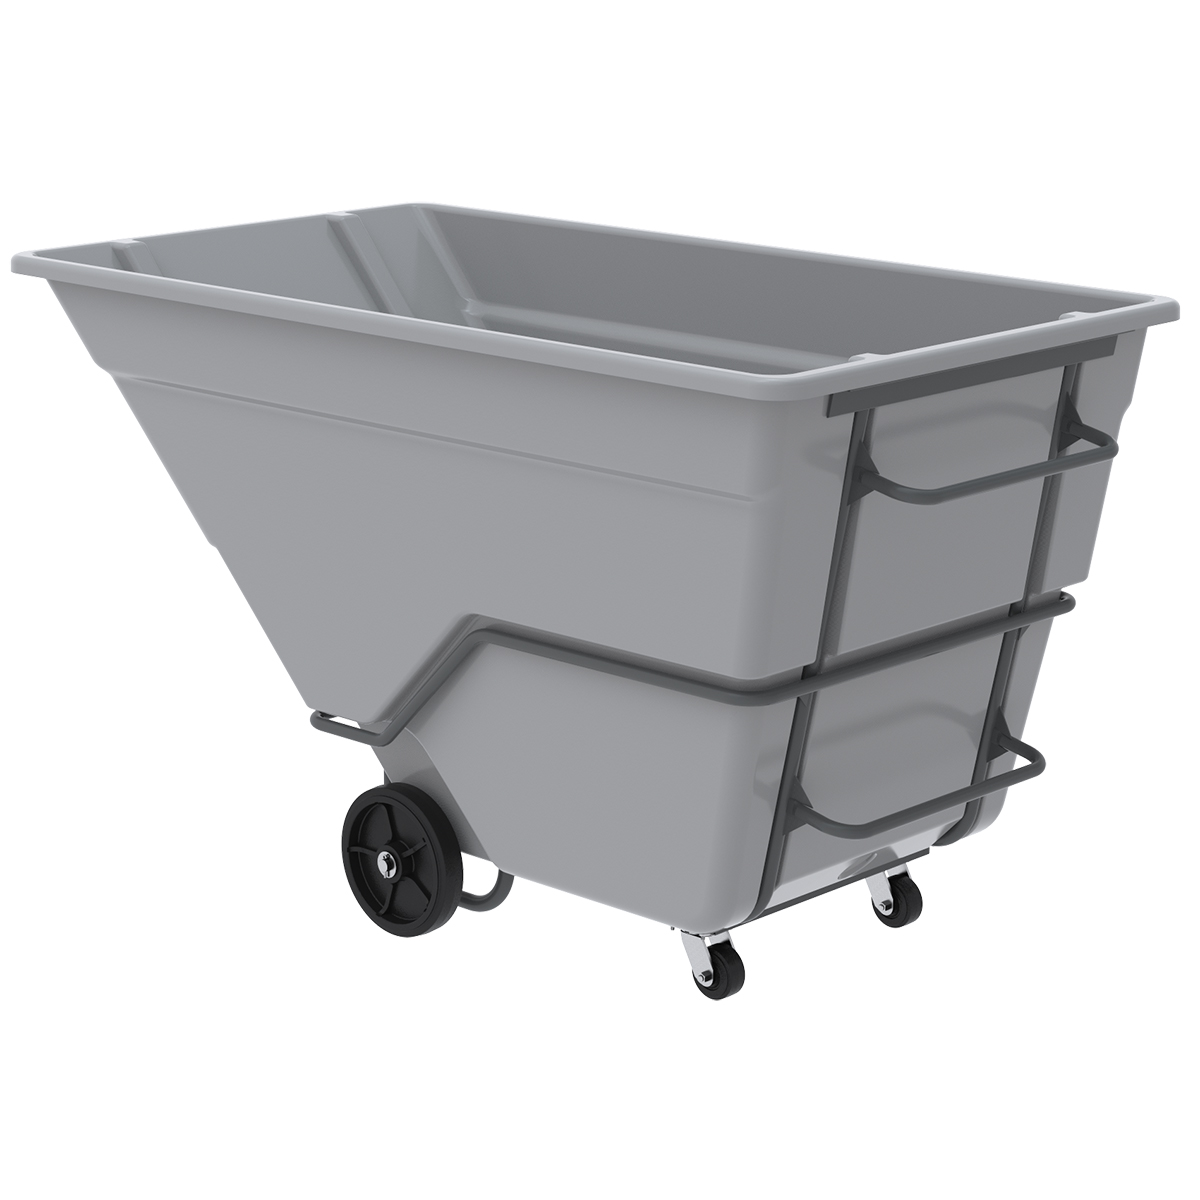 AKRO-TILT TRUCK, HEAVY DUTY, 400GAL - 2 YD.  This item sold in carton quantities of 1.